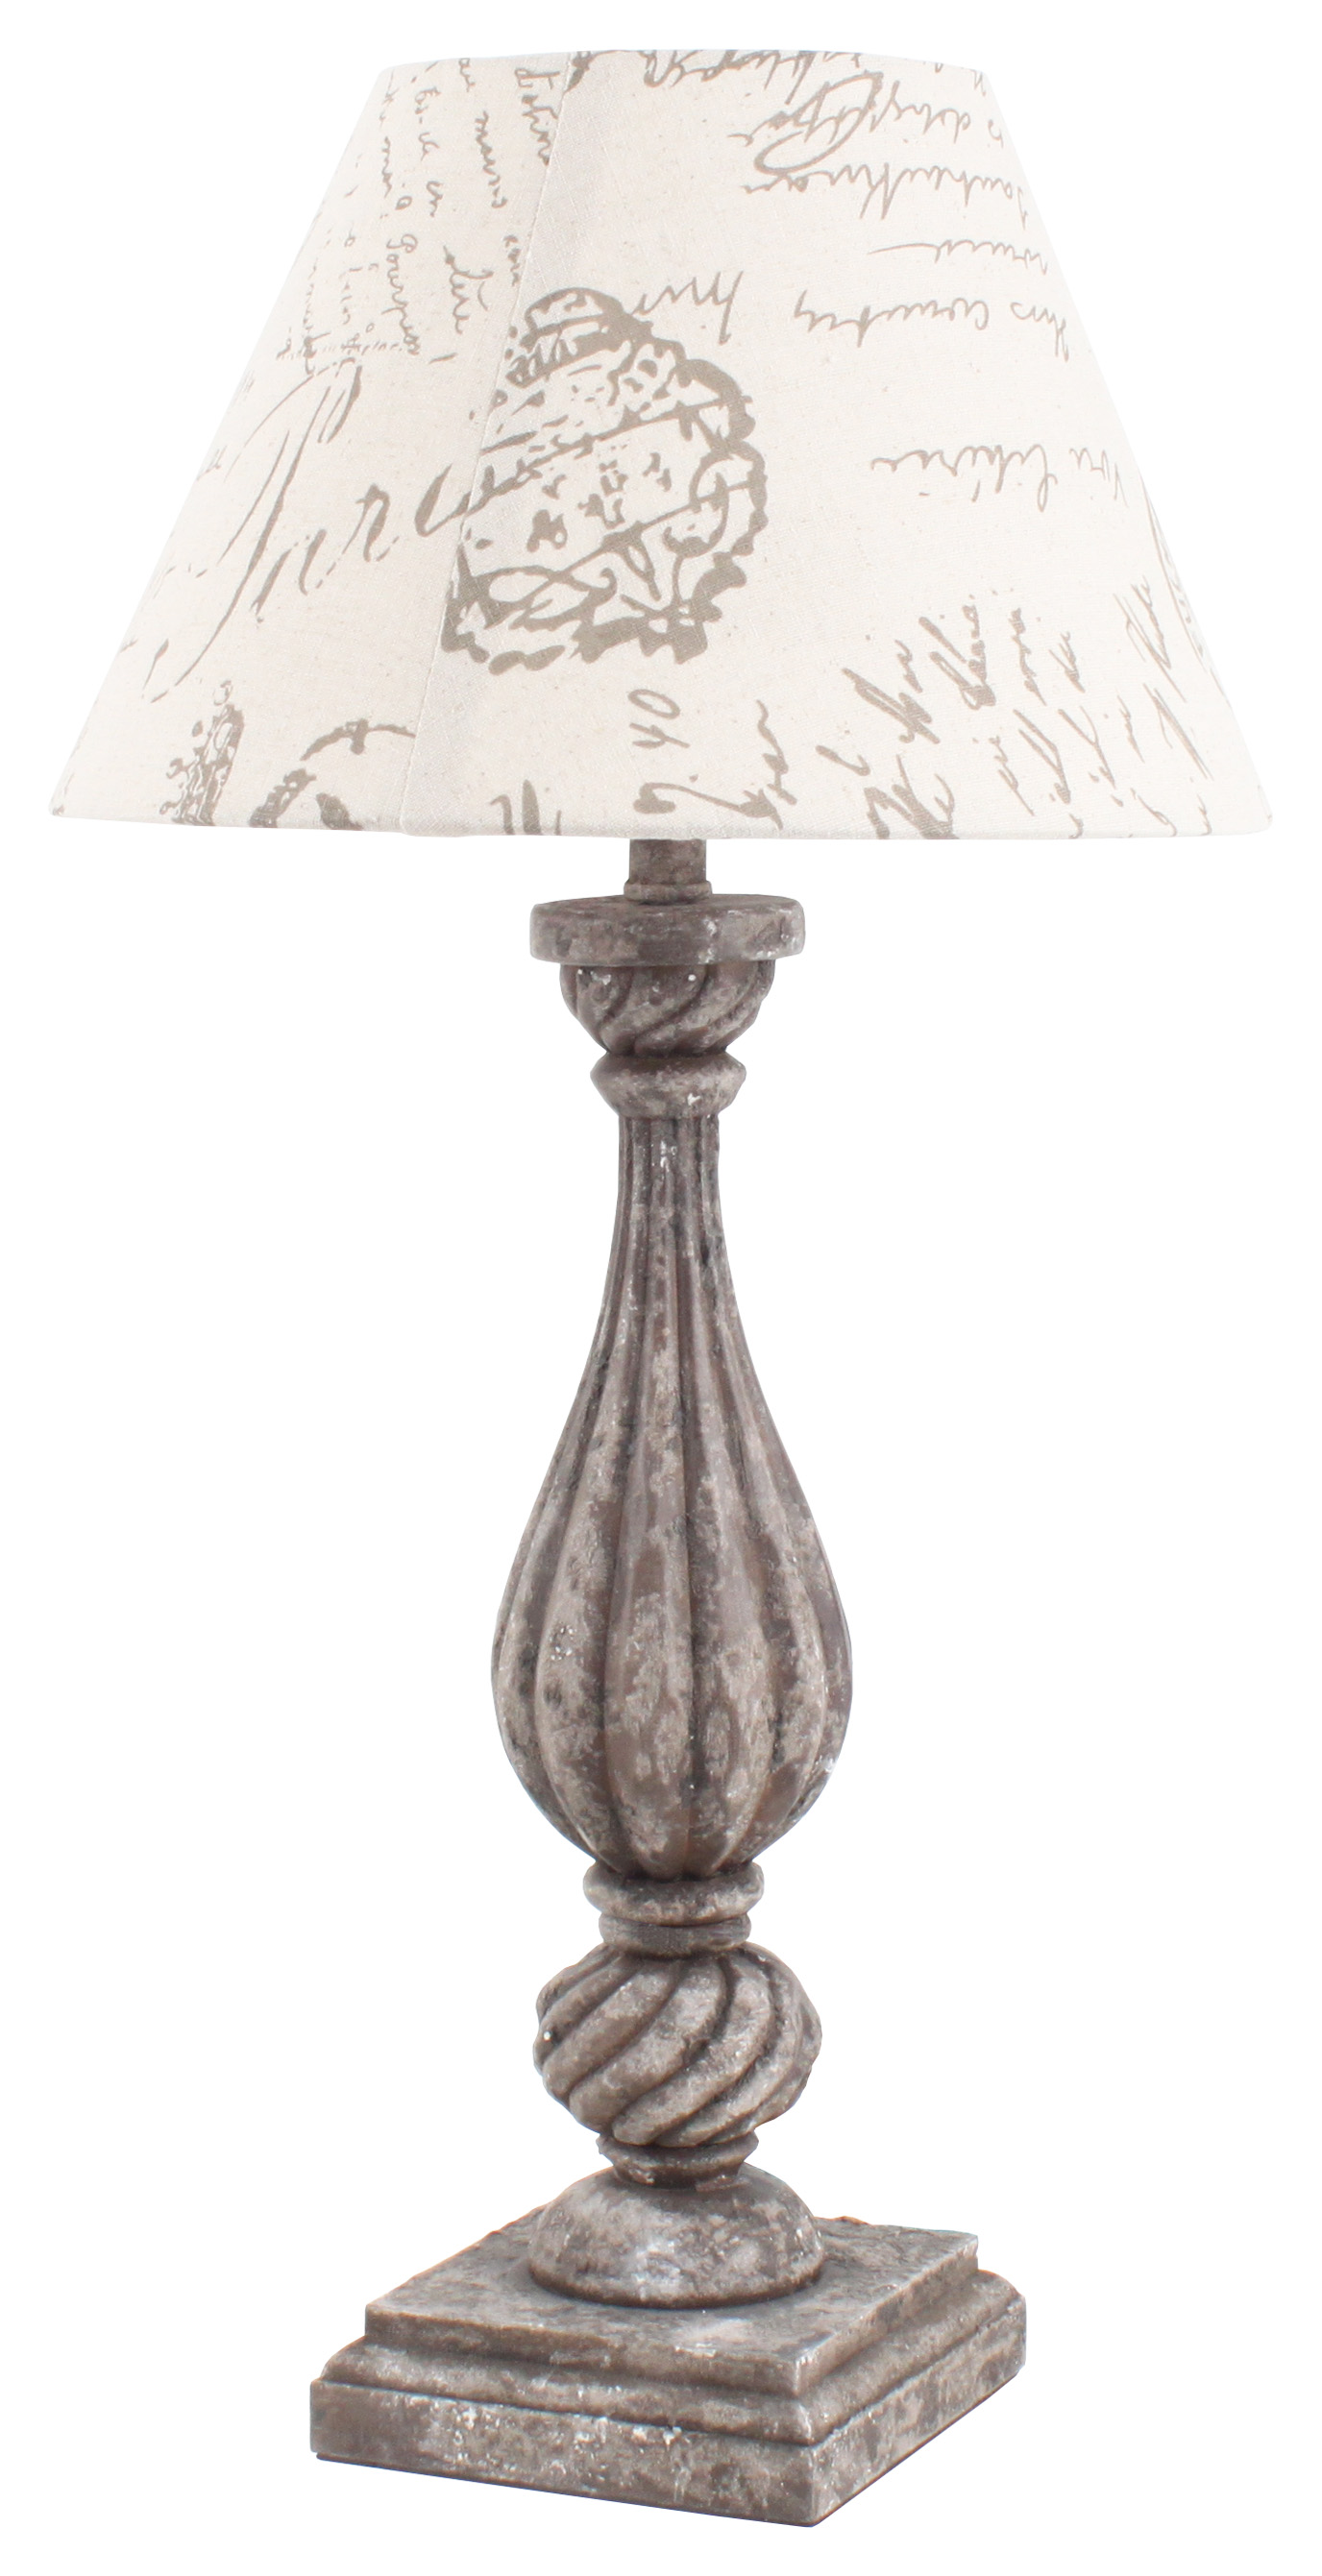 €70 WOODEN TABLE LAMP Η-60